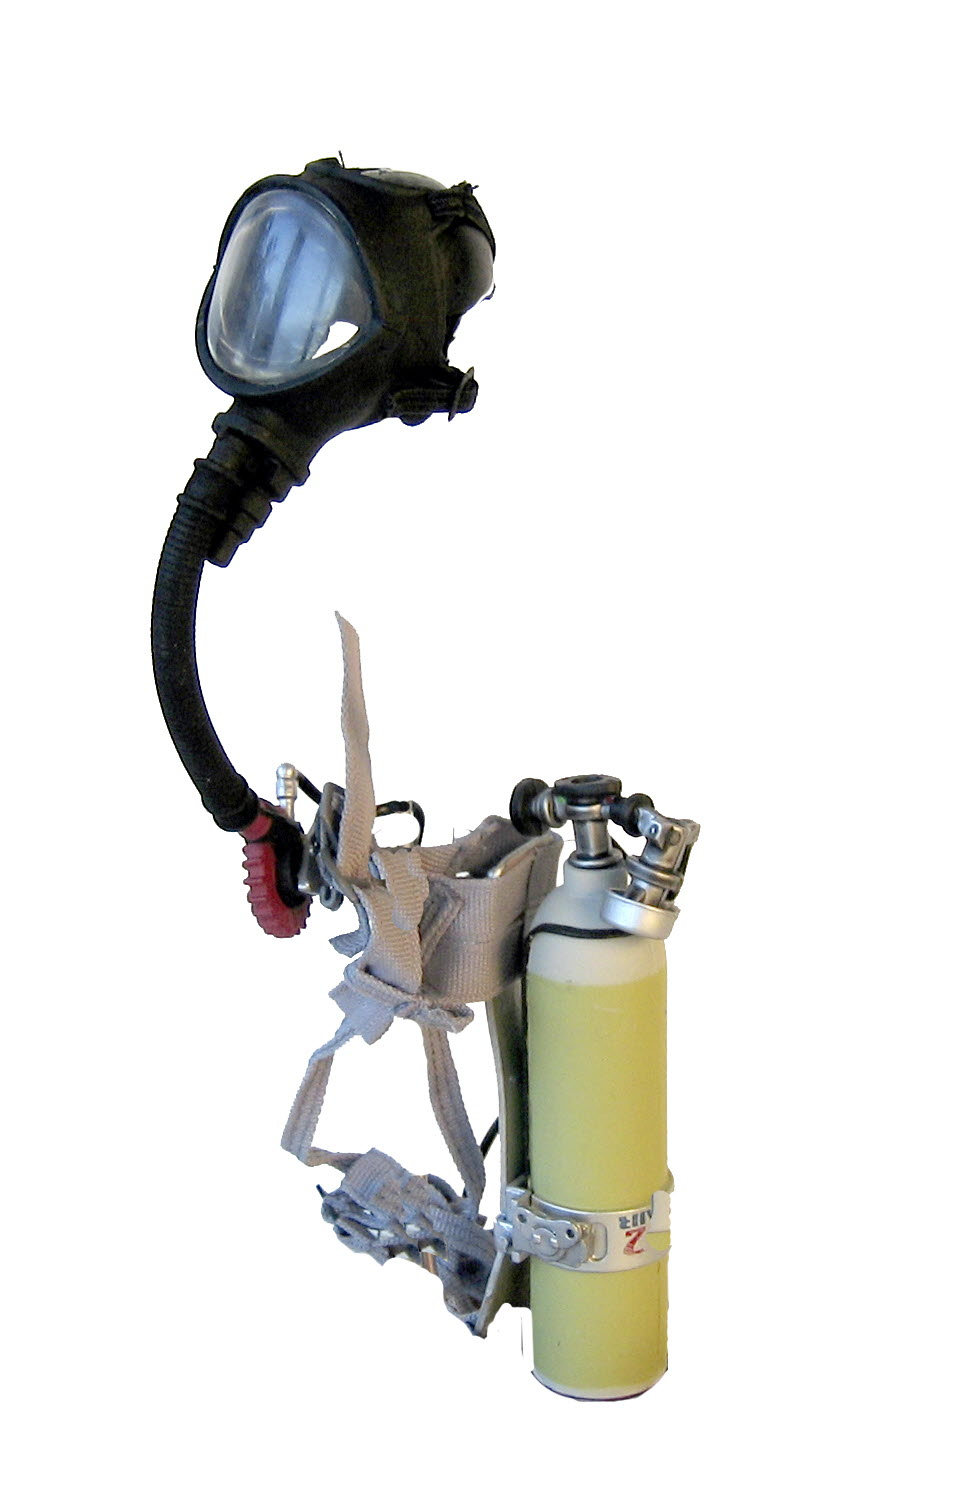 Firemans ox mask and ox bottle back pack - Click Image to Close